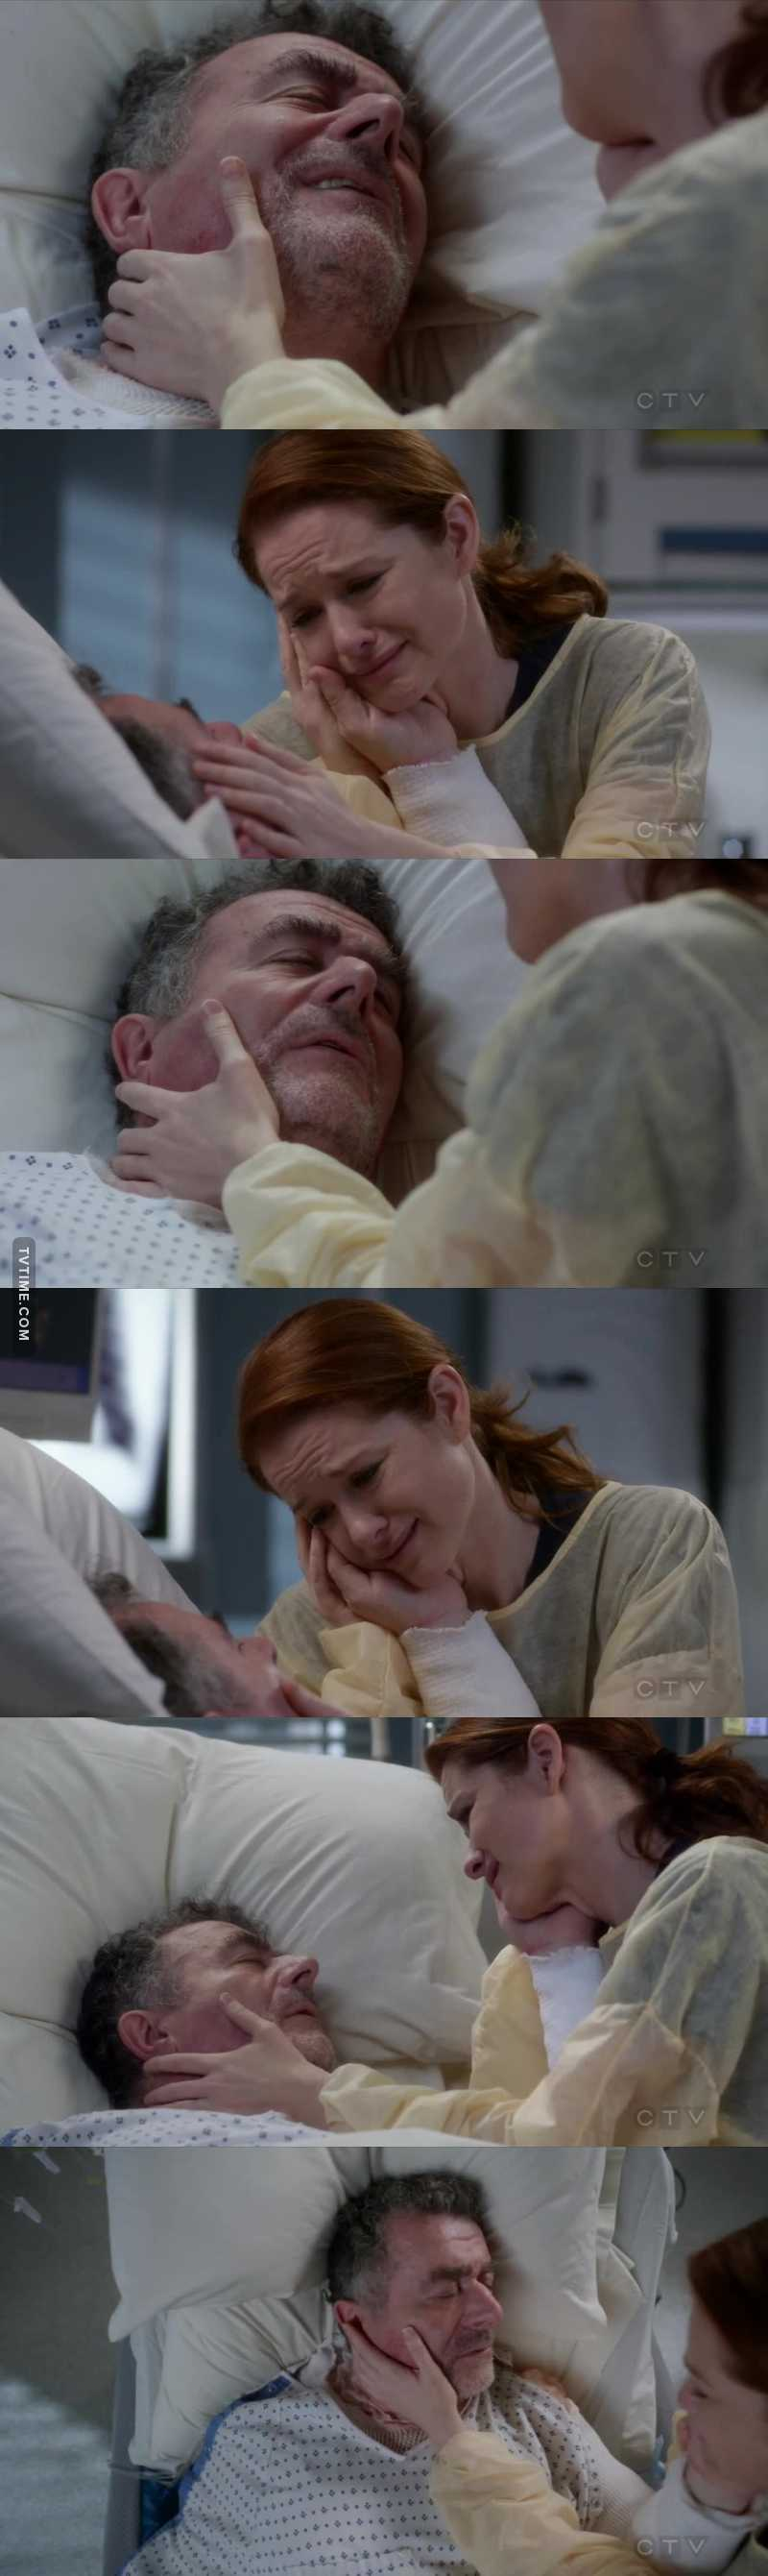 This scene broke my heart 💔